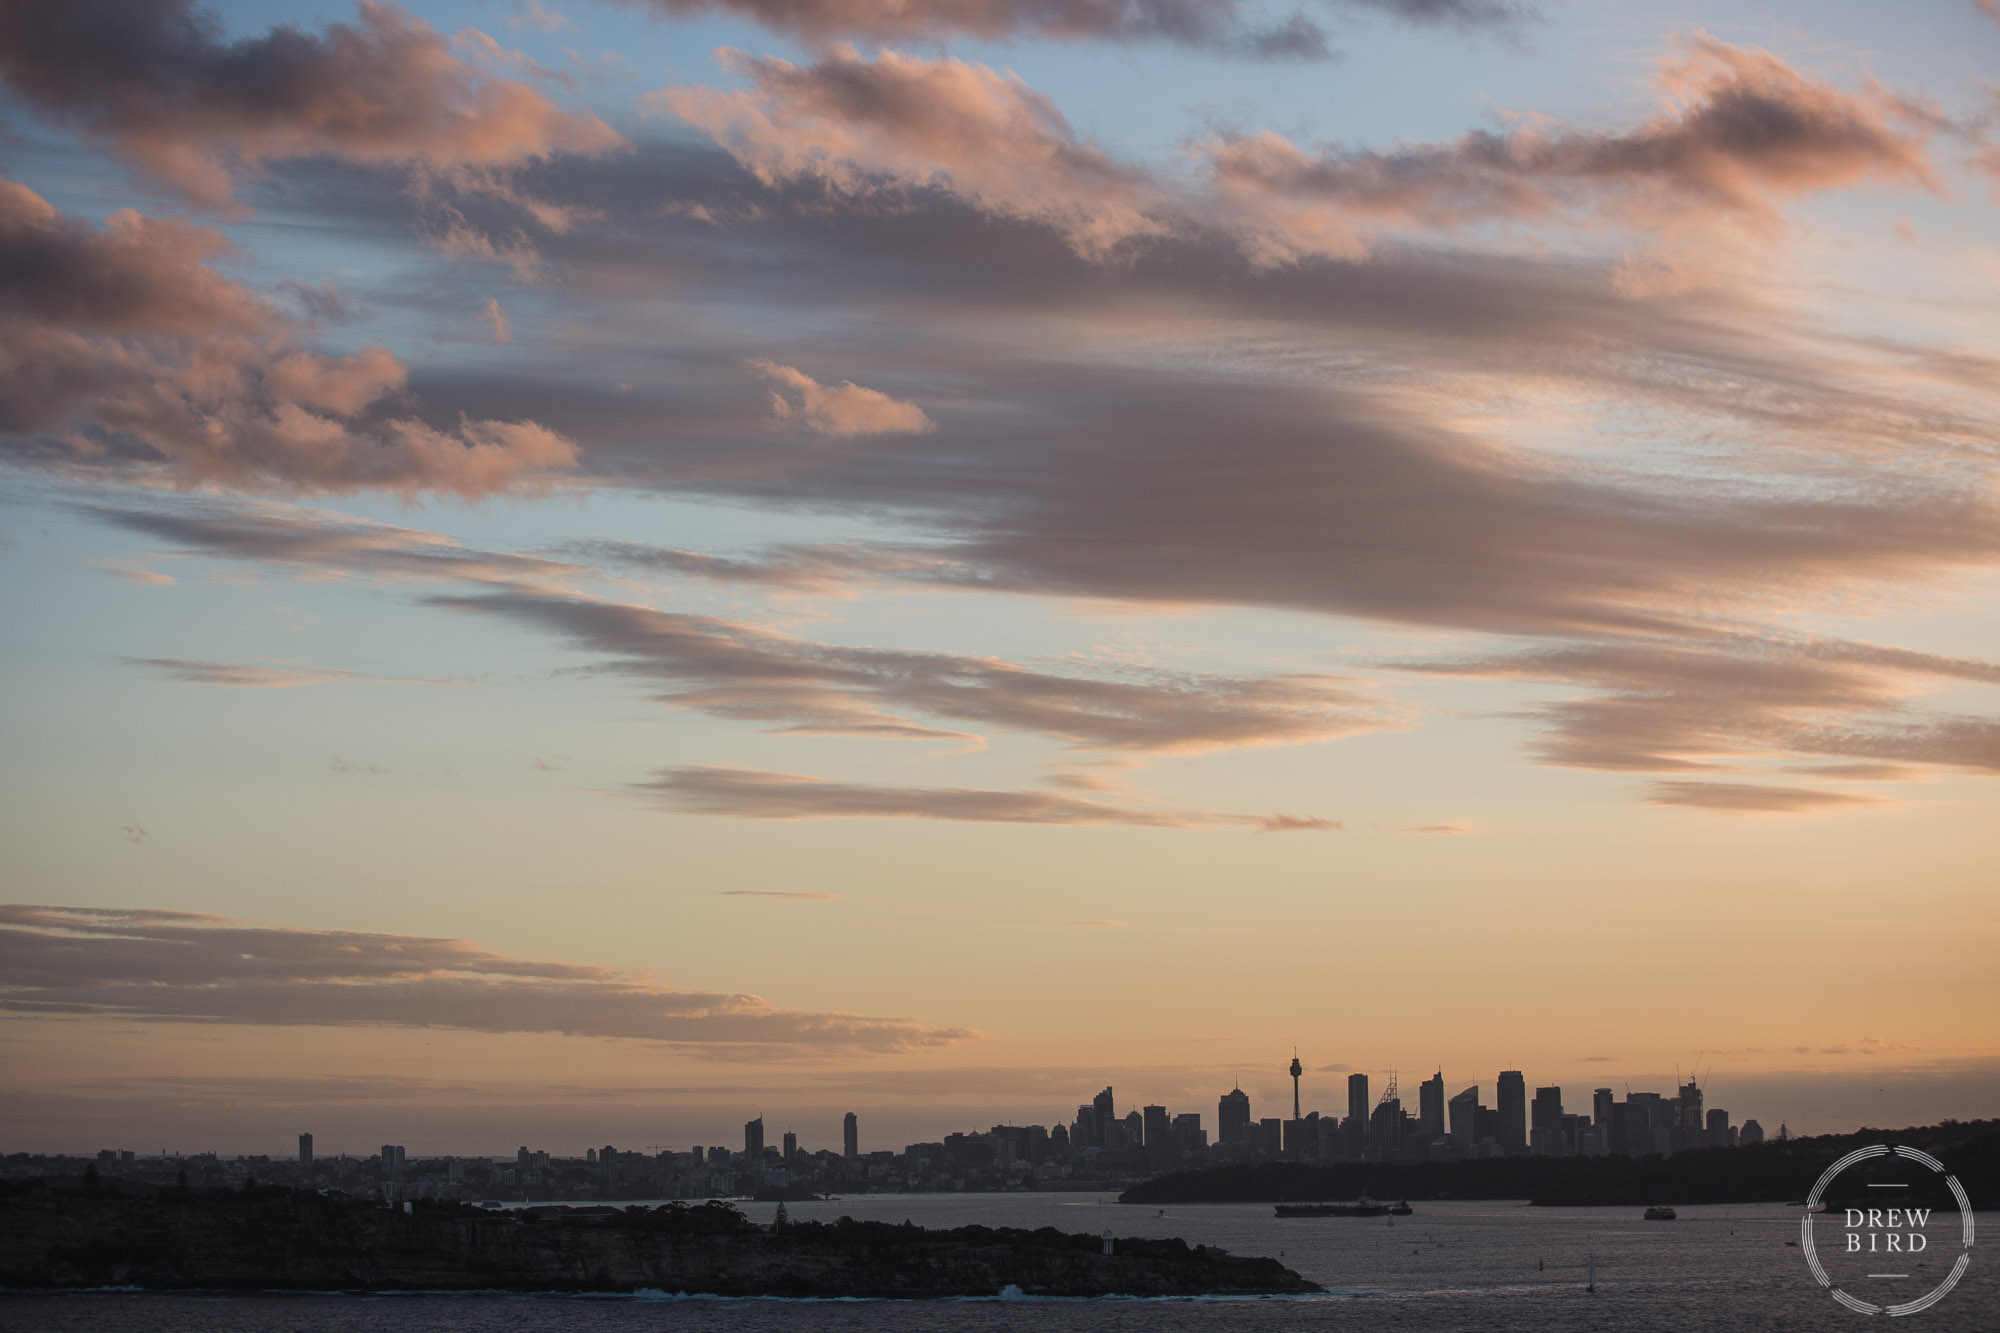 Sydney Australia city skyline at sunset. Corporate photojournalism and lifestyle photography for Adobe by San Francisco photographer Drew Bird